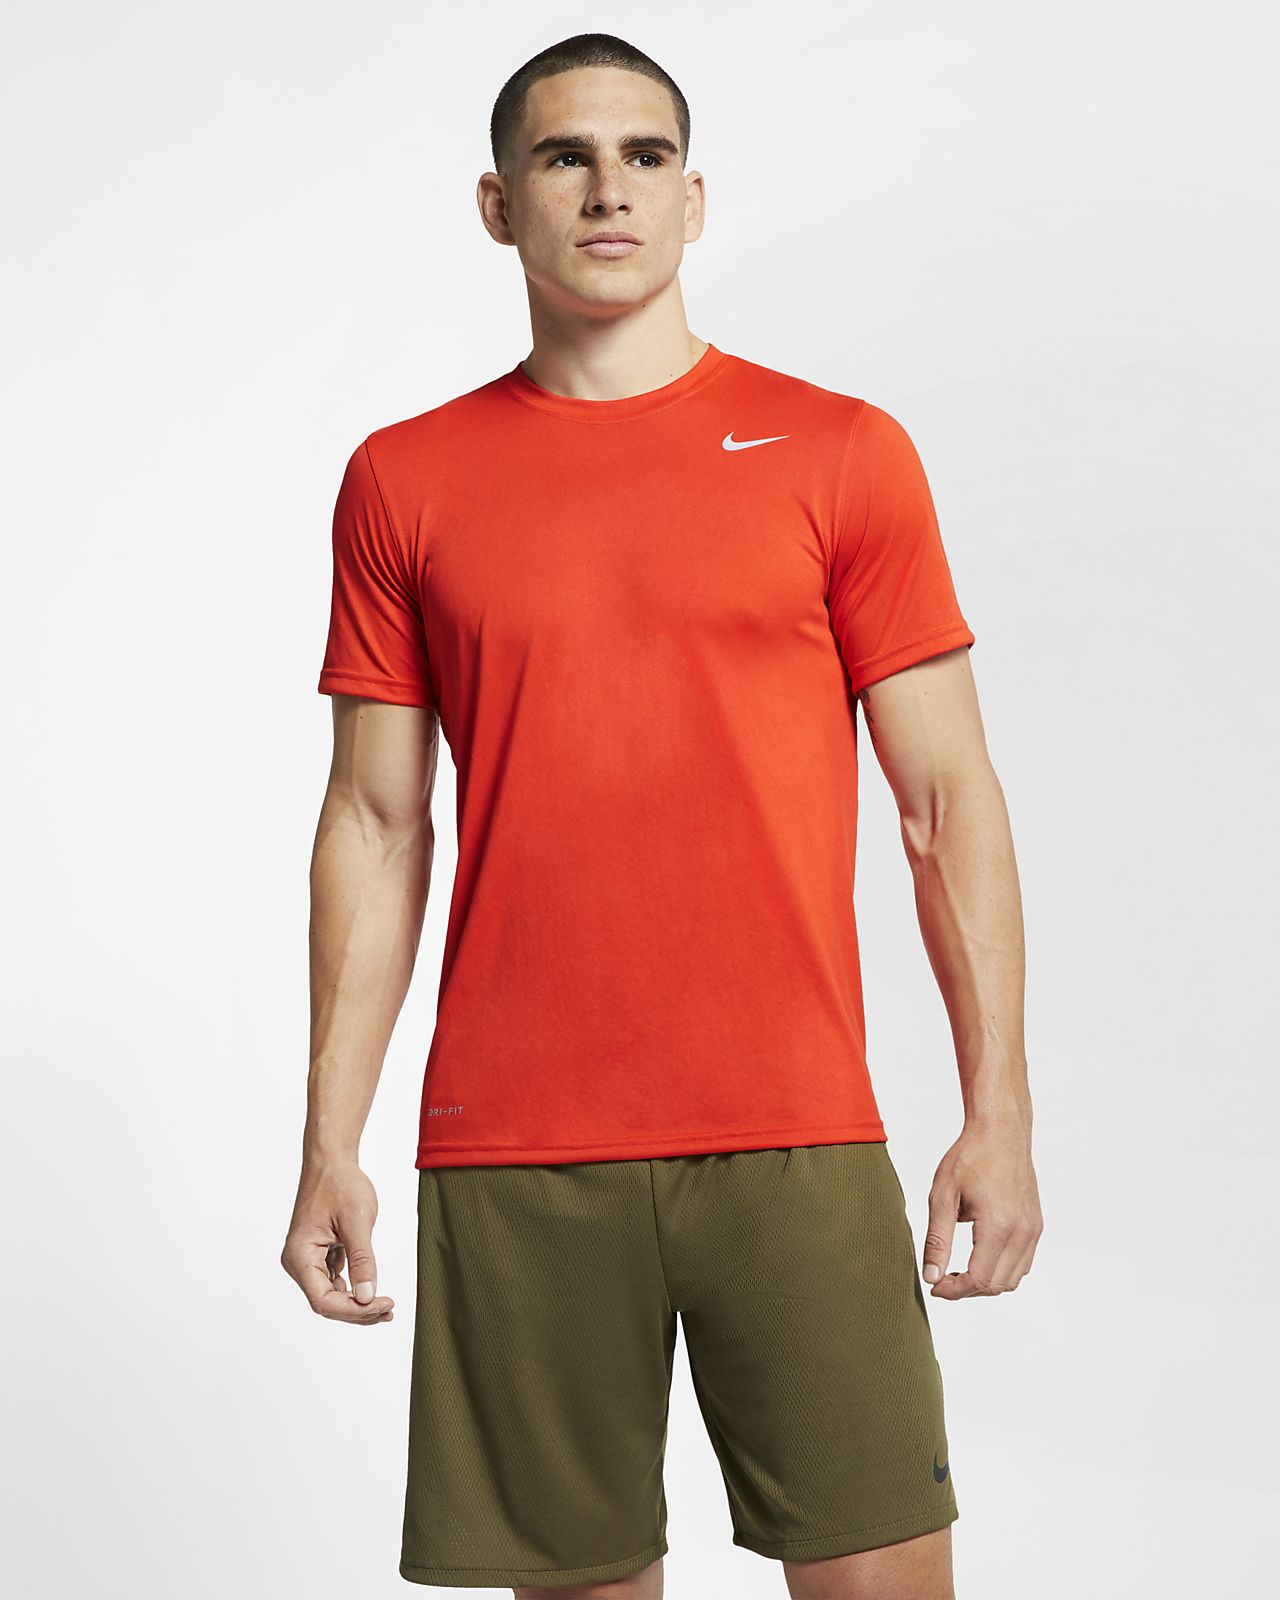 448b8471760bde Nike Legend 2.0 Men s Training T-Shirt. Nike.com